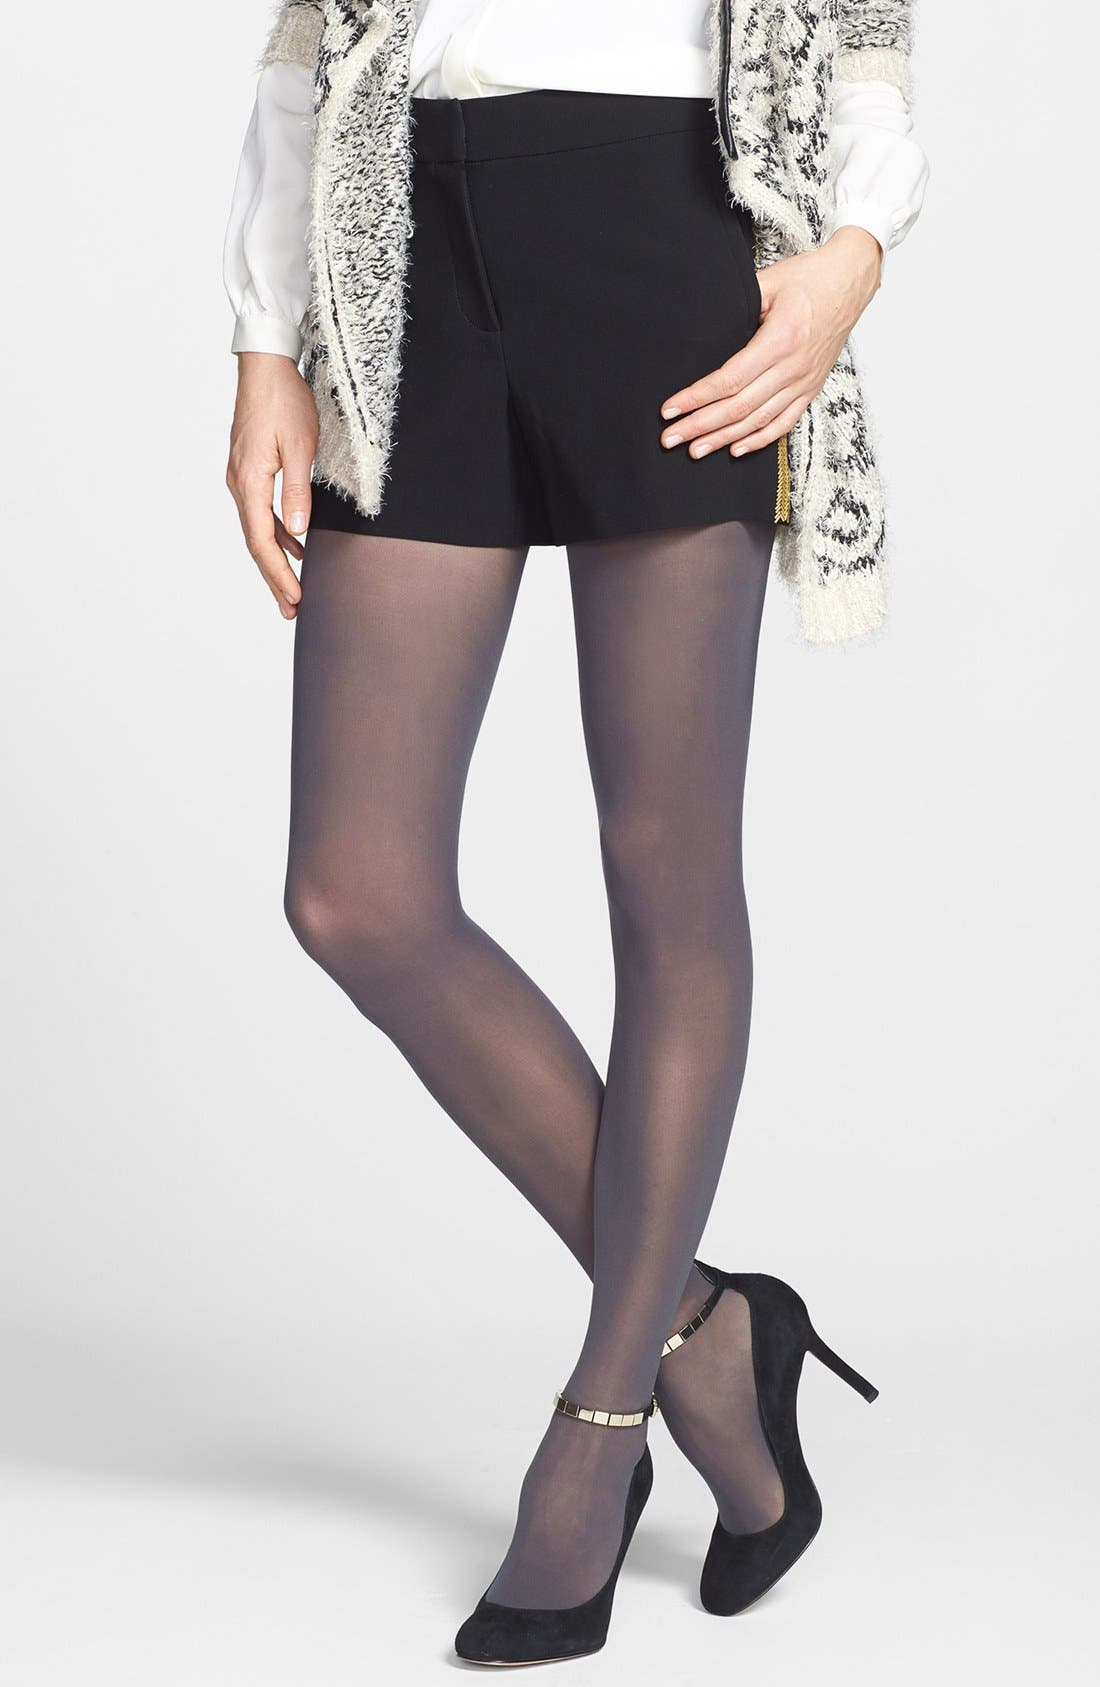 DKNY Light Opaque Control Top Tights (2 for $25)